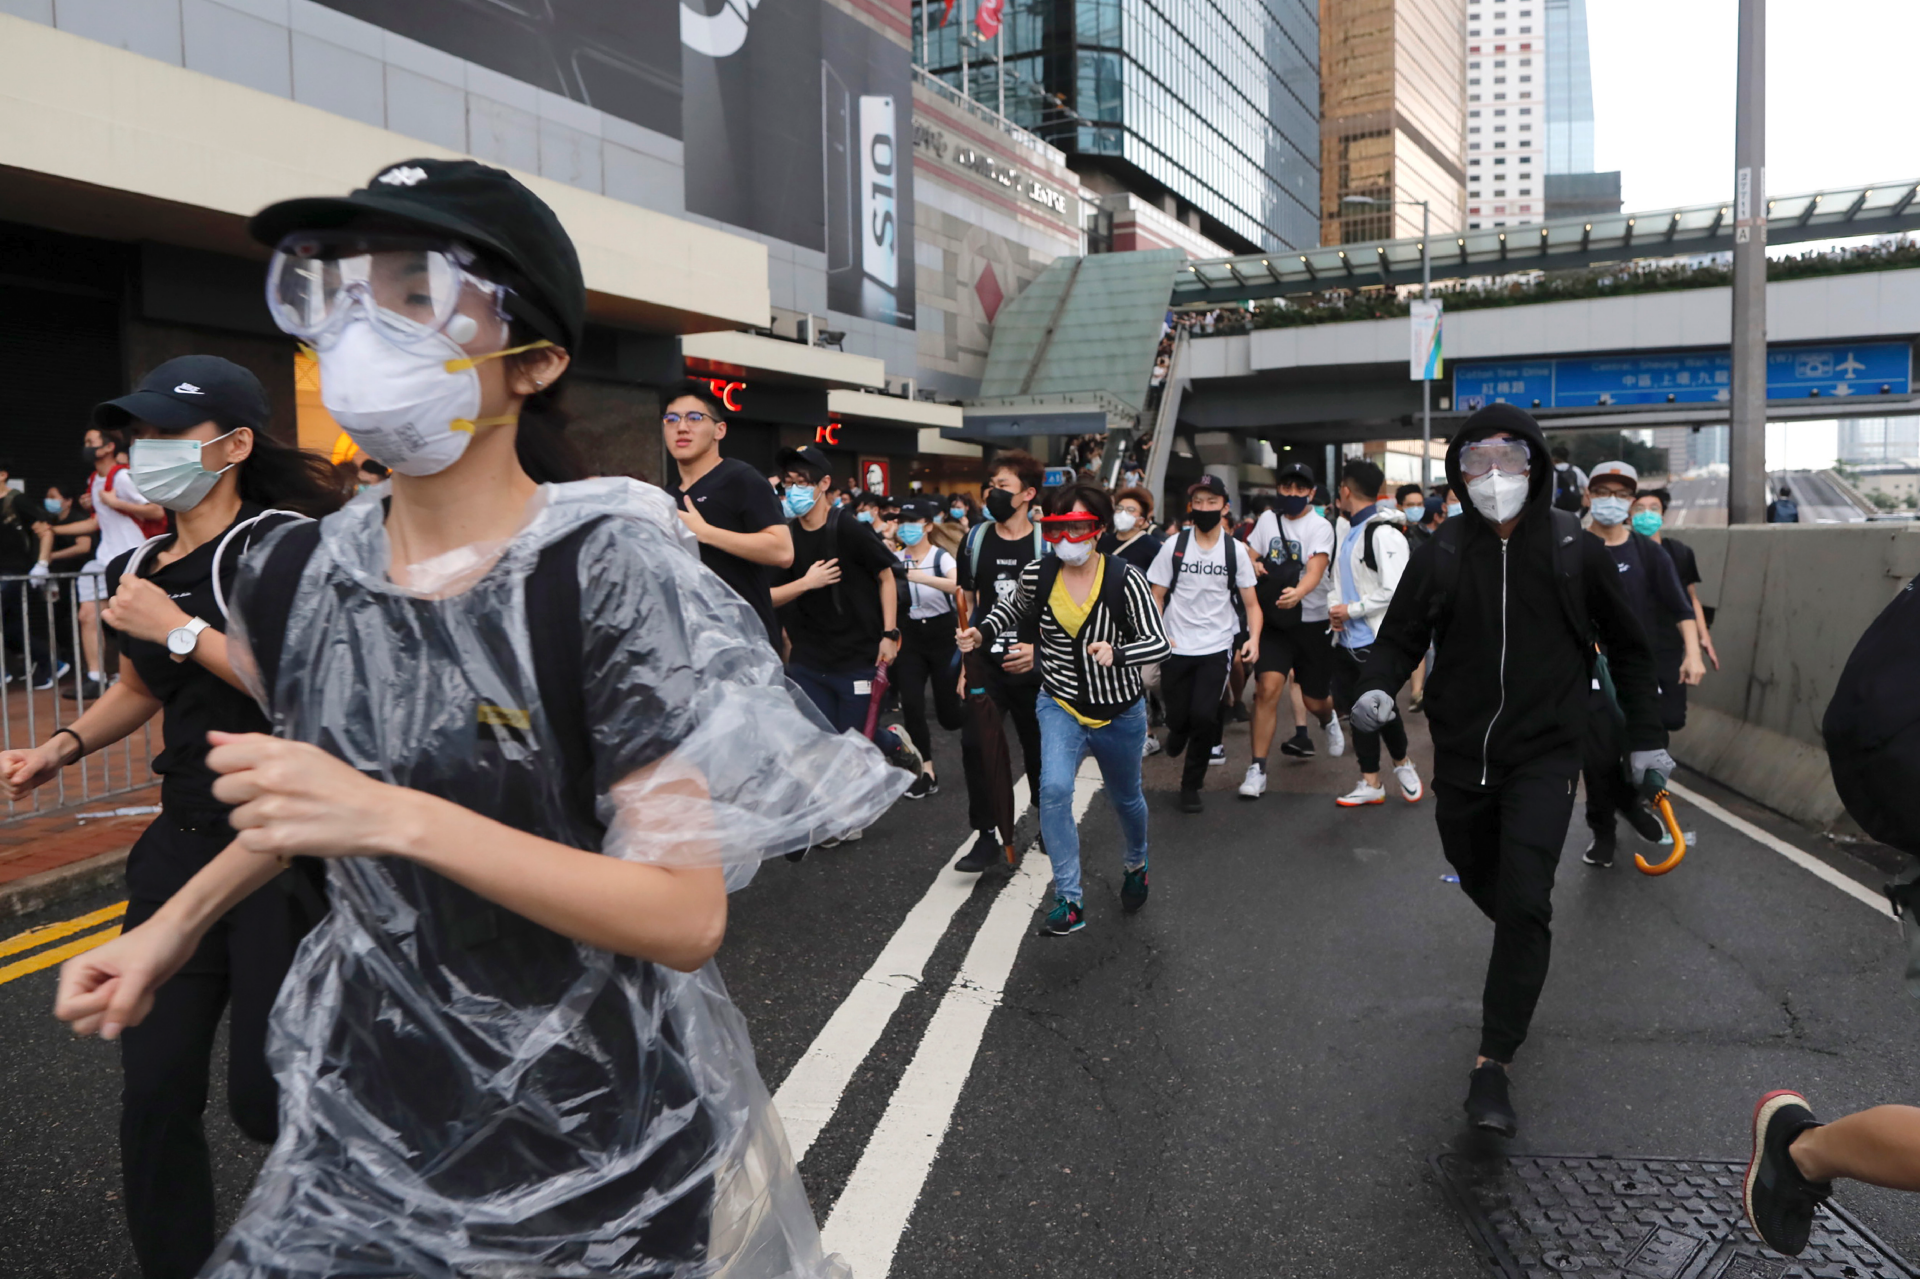 Westlake Legal Group ContentBroker_contentid-0fe55588aa5144c2839c27243a57fa74 The Latest: Crowd blocks Hong Kong HQ trying to halt bill Hong Kong fox-news/world/world-regions/asia fox-news/world fnc/world fnc Associated Press article 08709aad-8d95-51d5-a037-d51008560e25